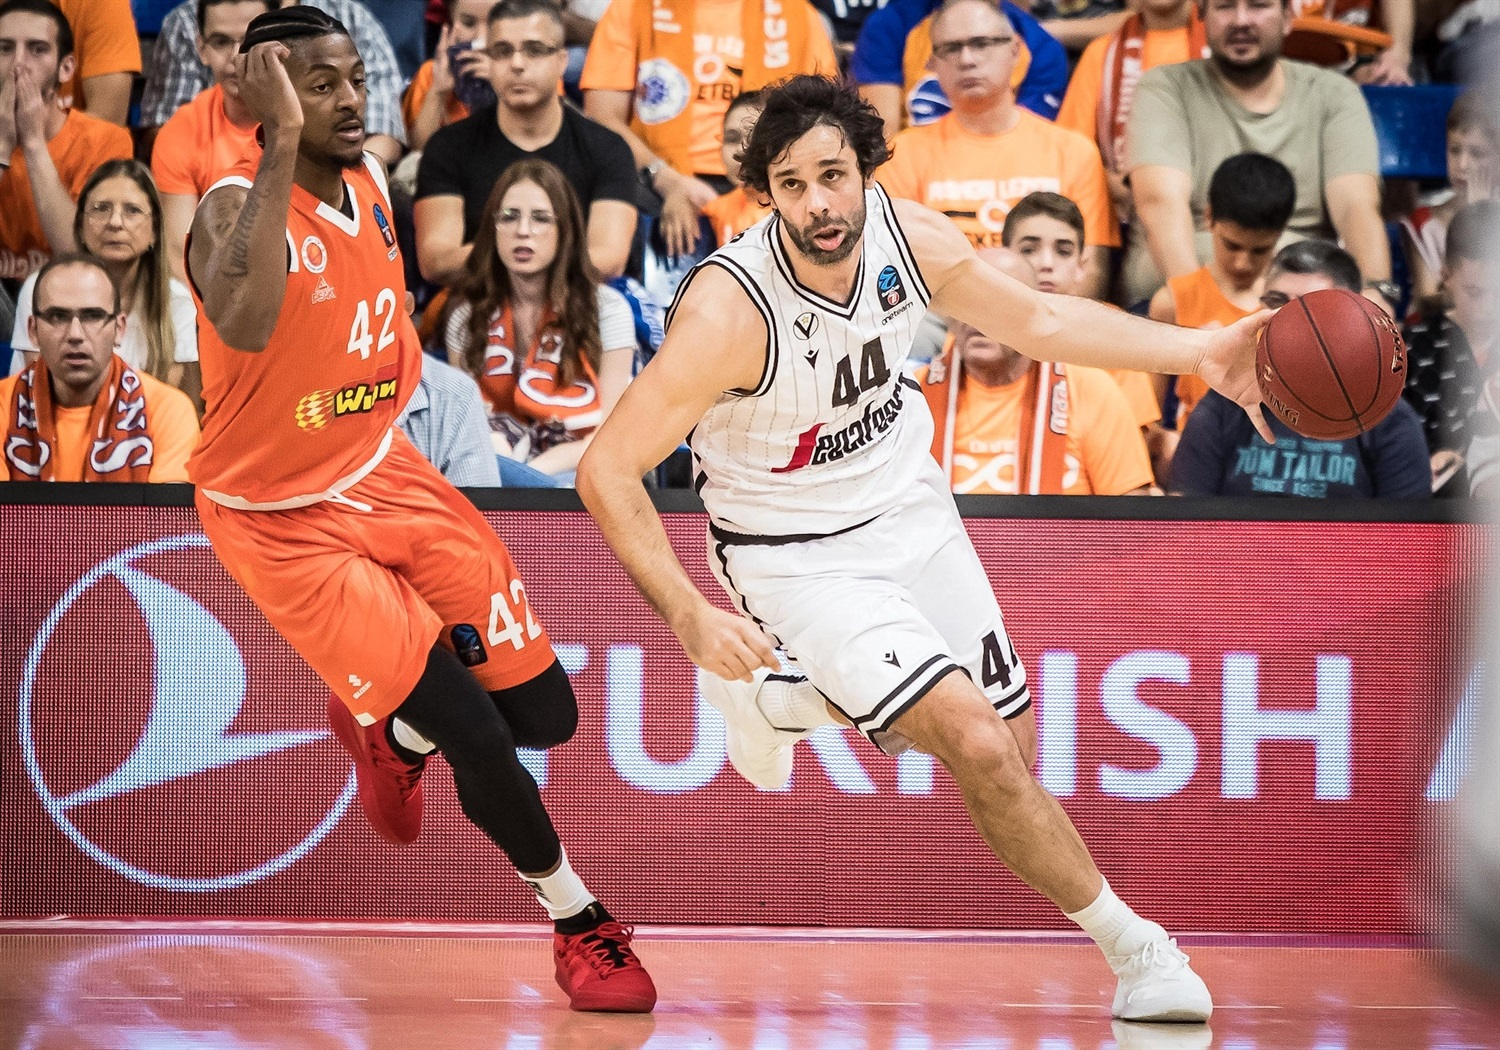 Milos Teodosic - Segafredo Virtus Bologna (photo Rishon) - EC19